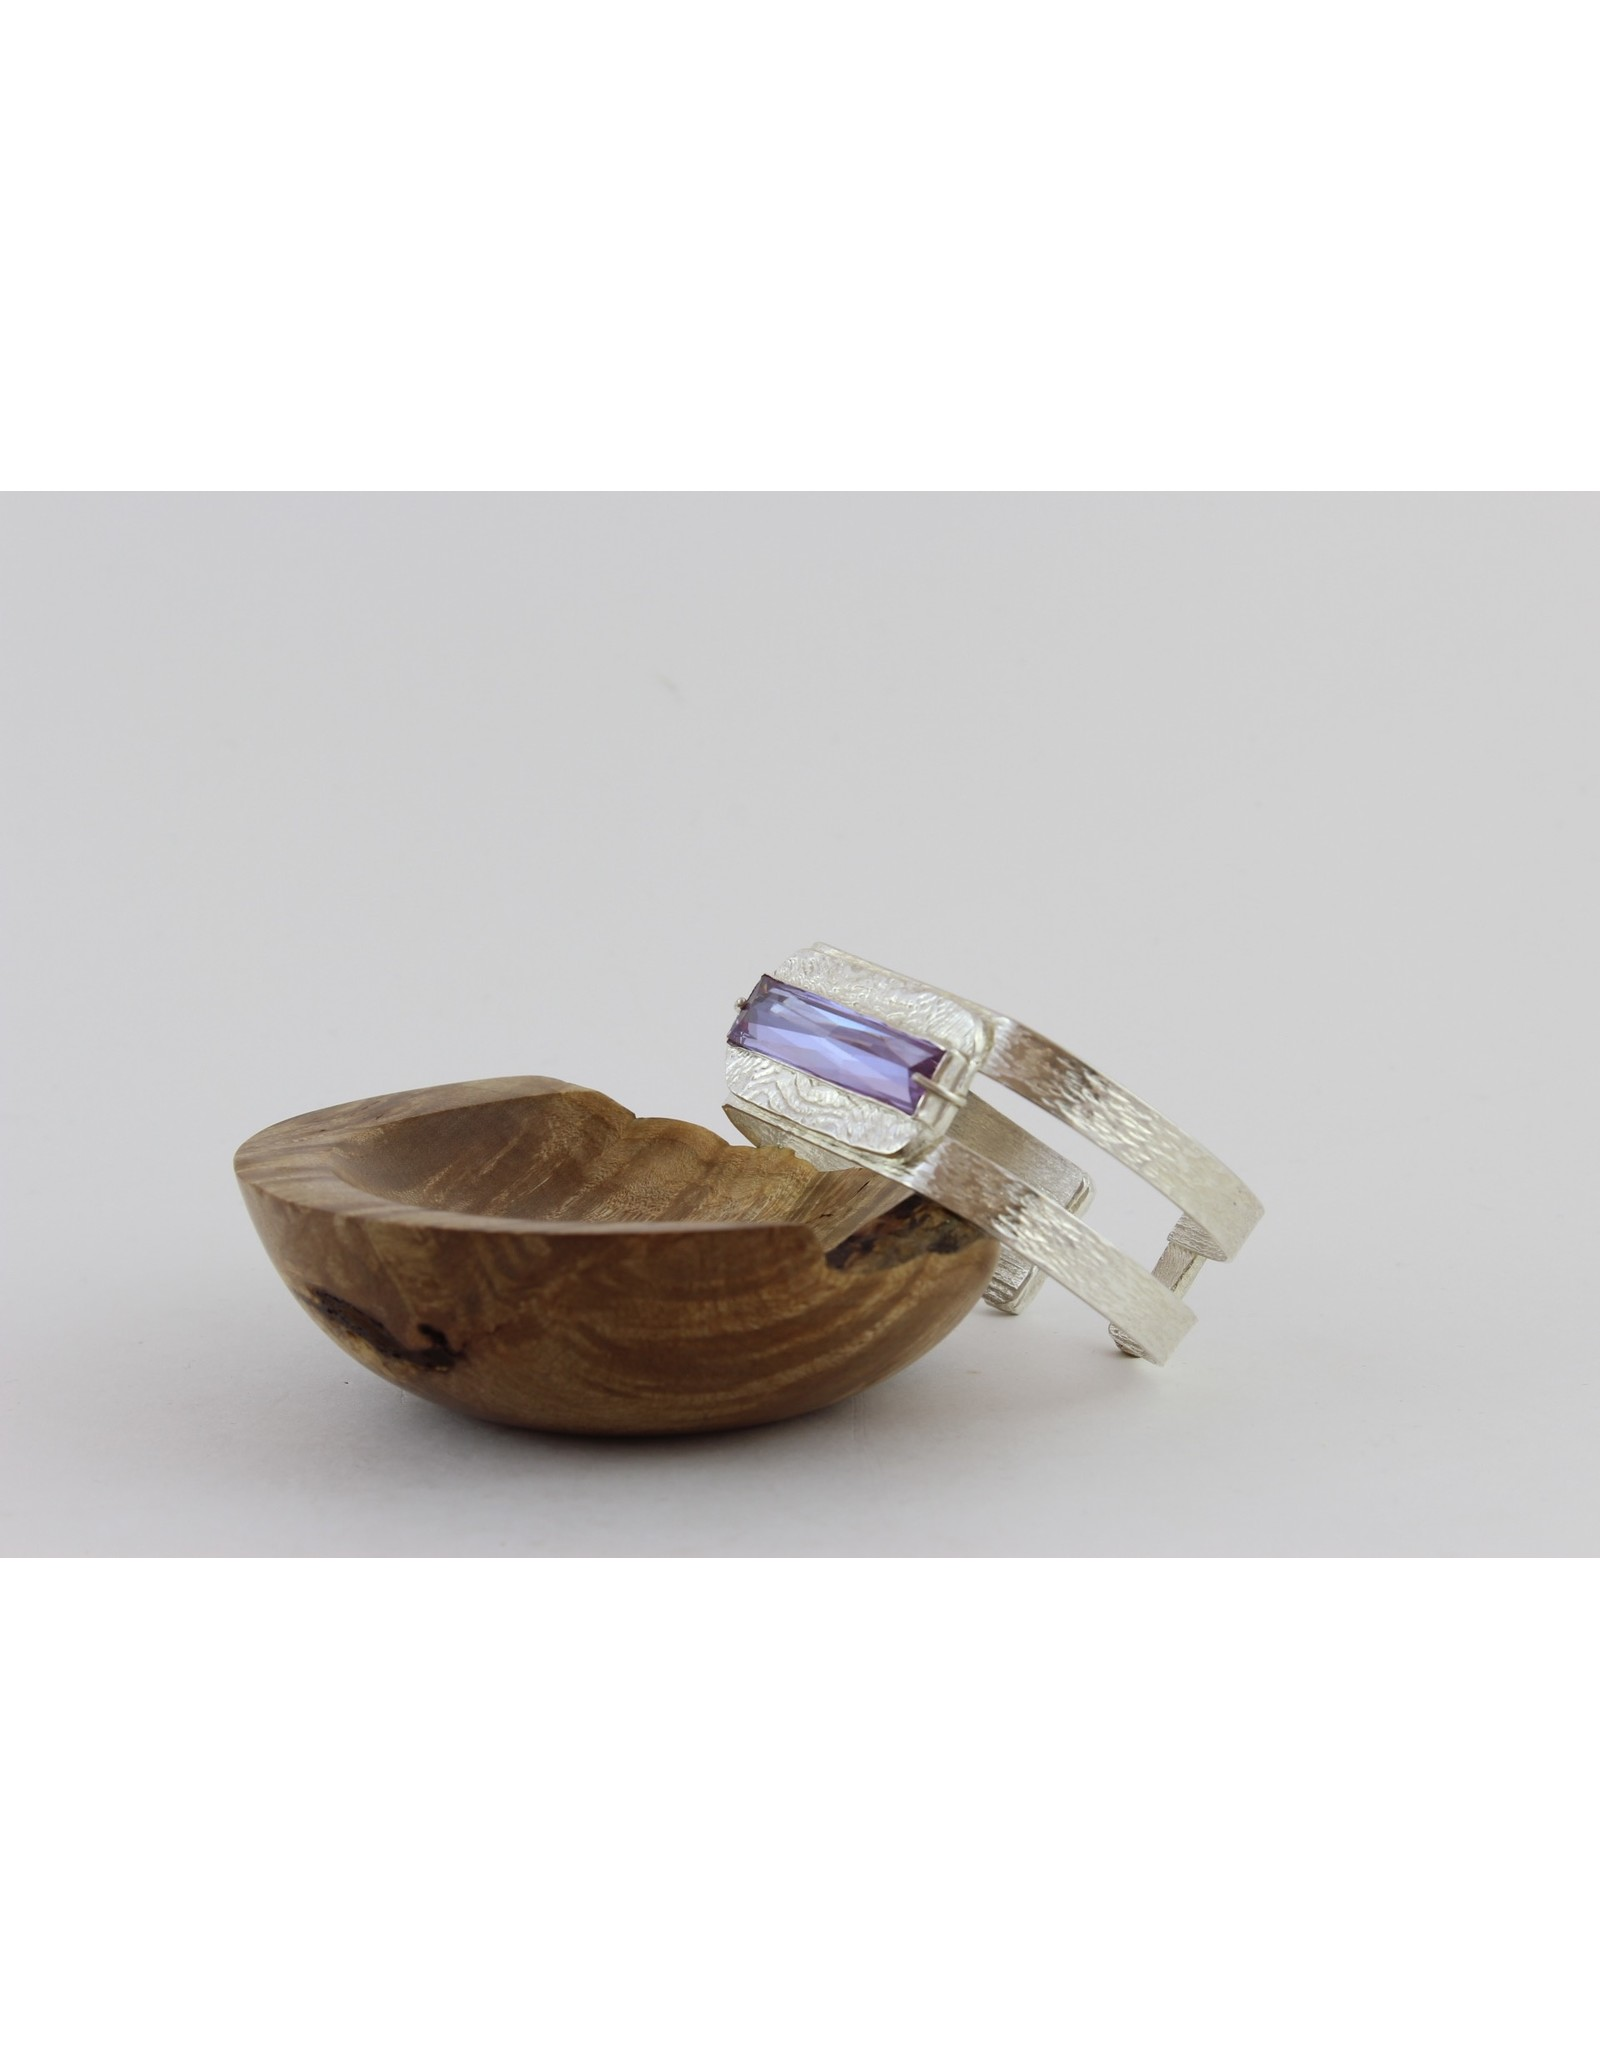 Teddy Tedford Quartz Cuff by Teddy Tedford